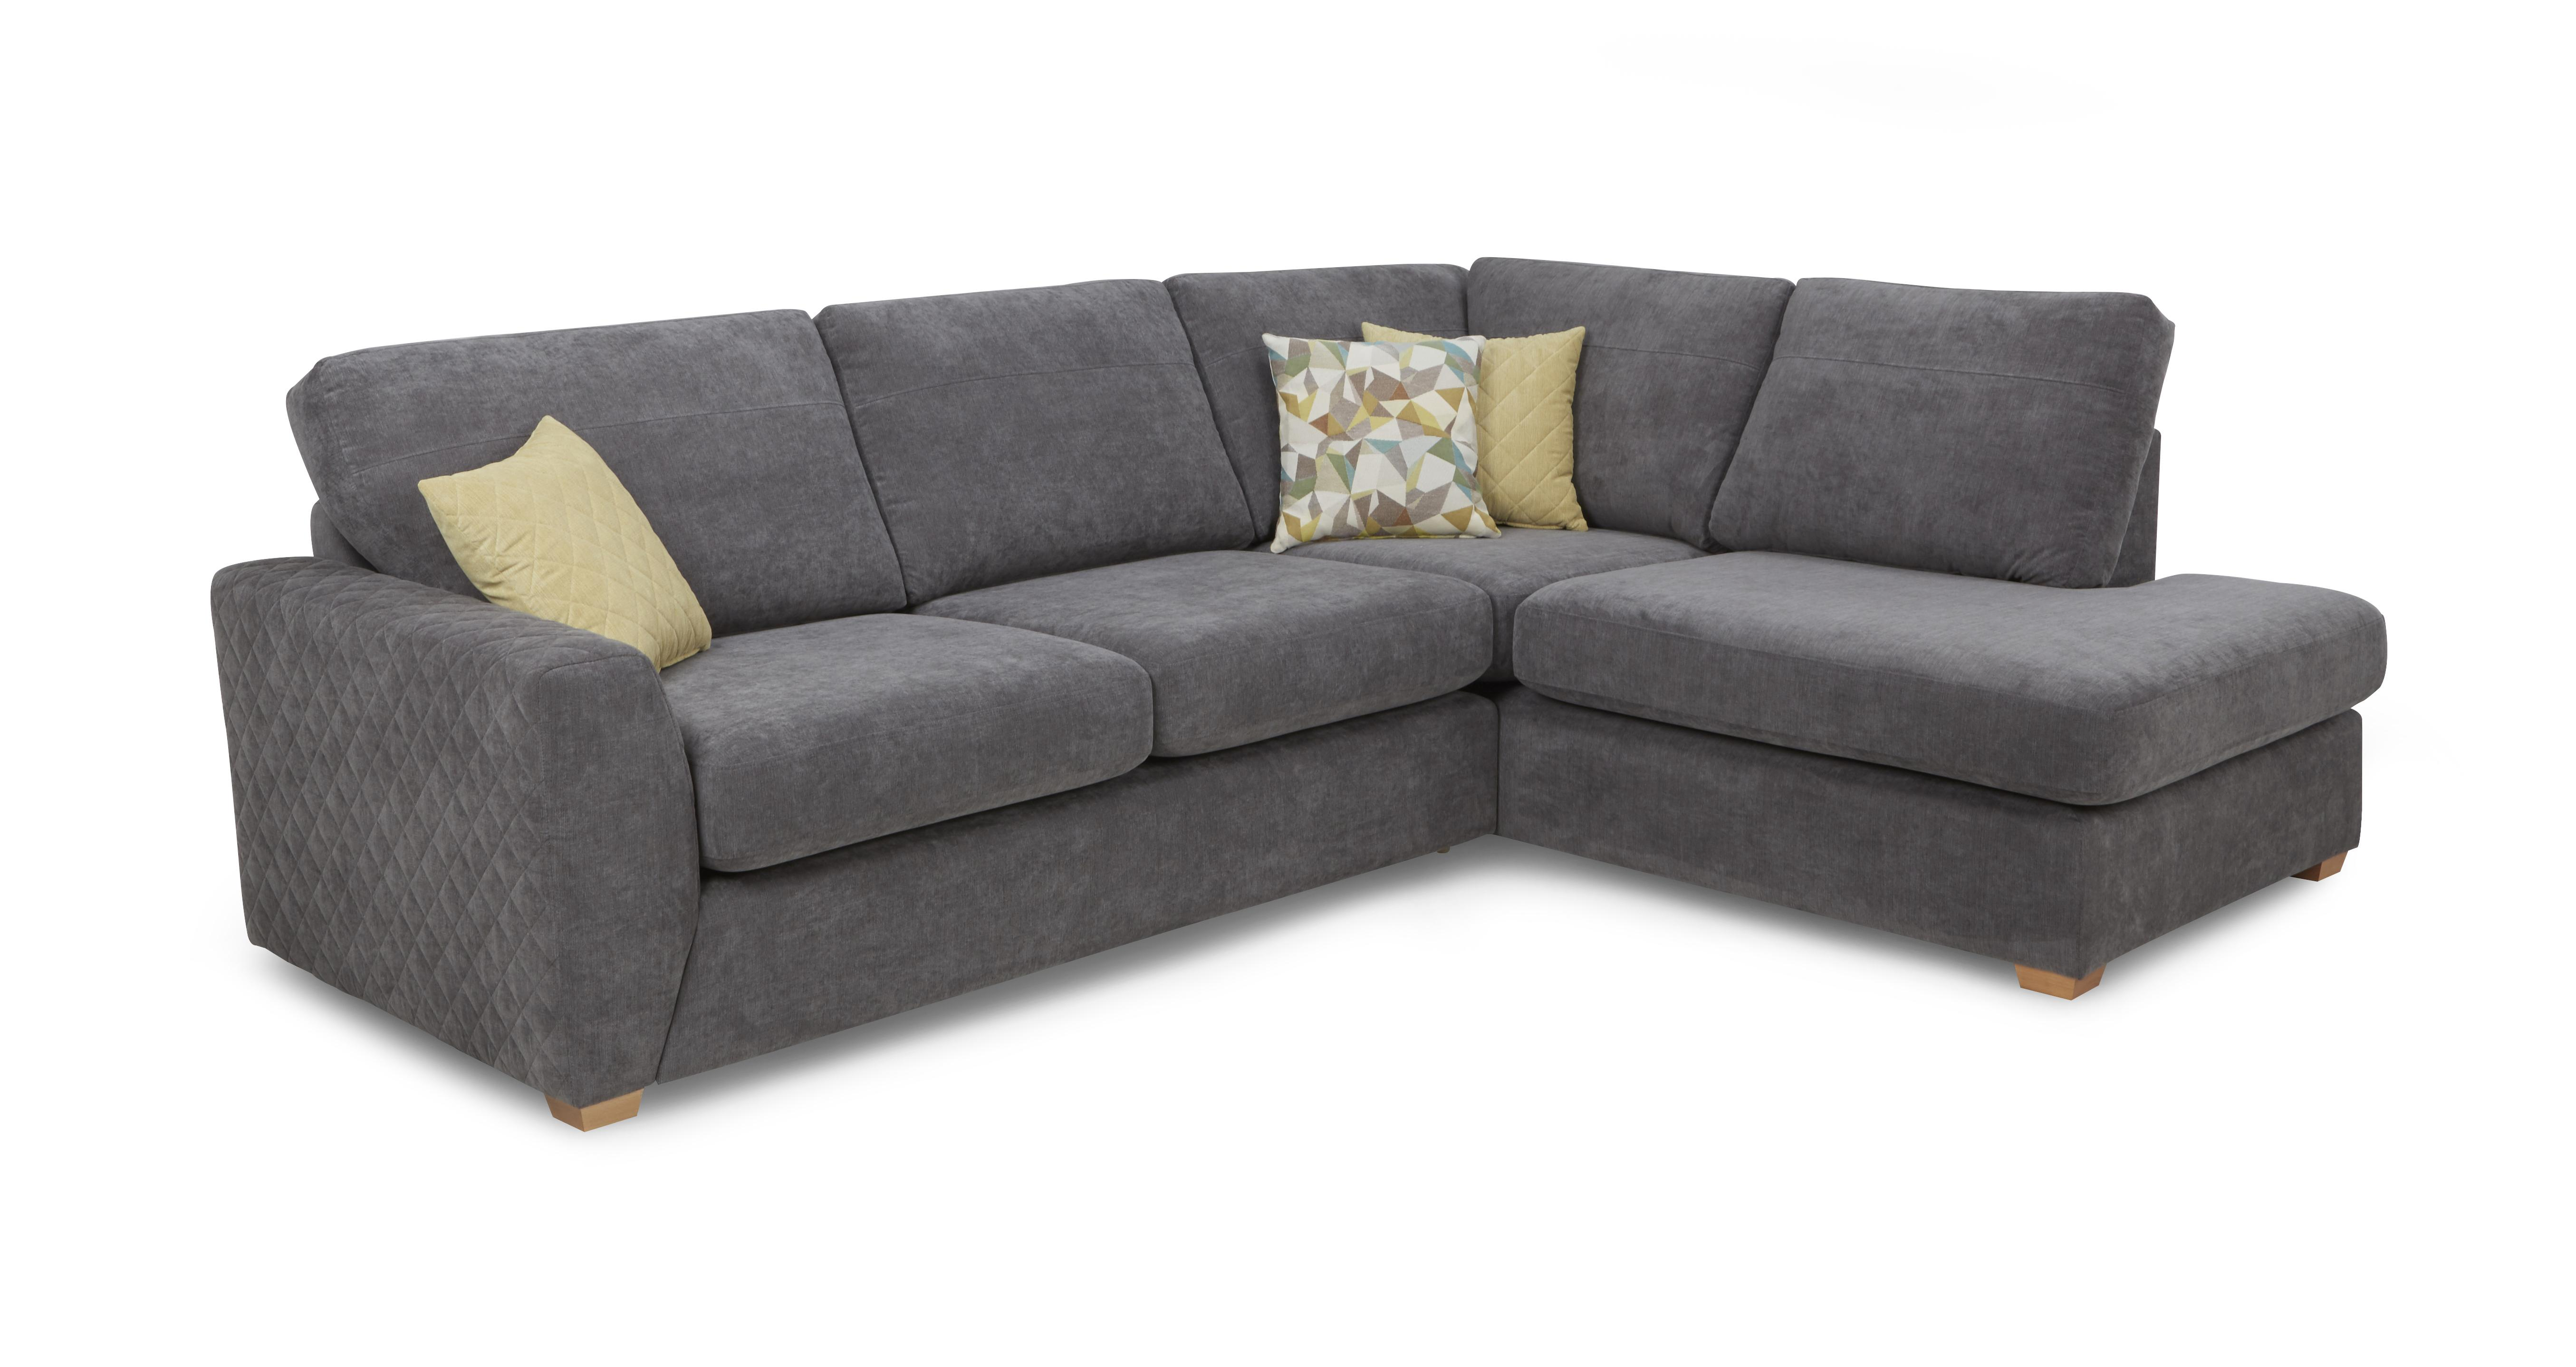 Astaire Left Hand Facing Arm Open End Corner Deluxe Sofa